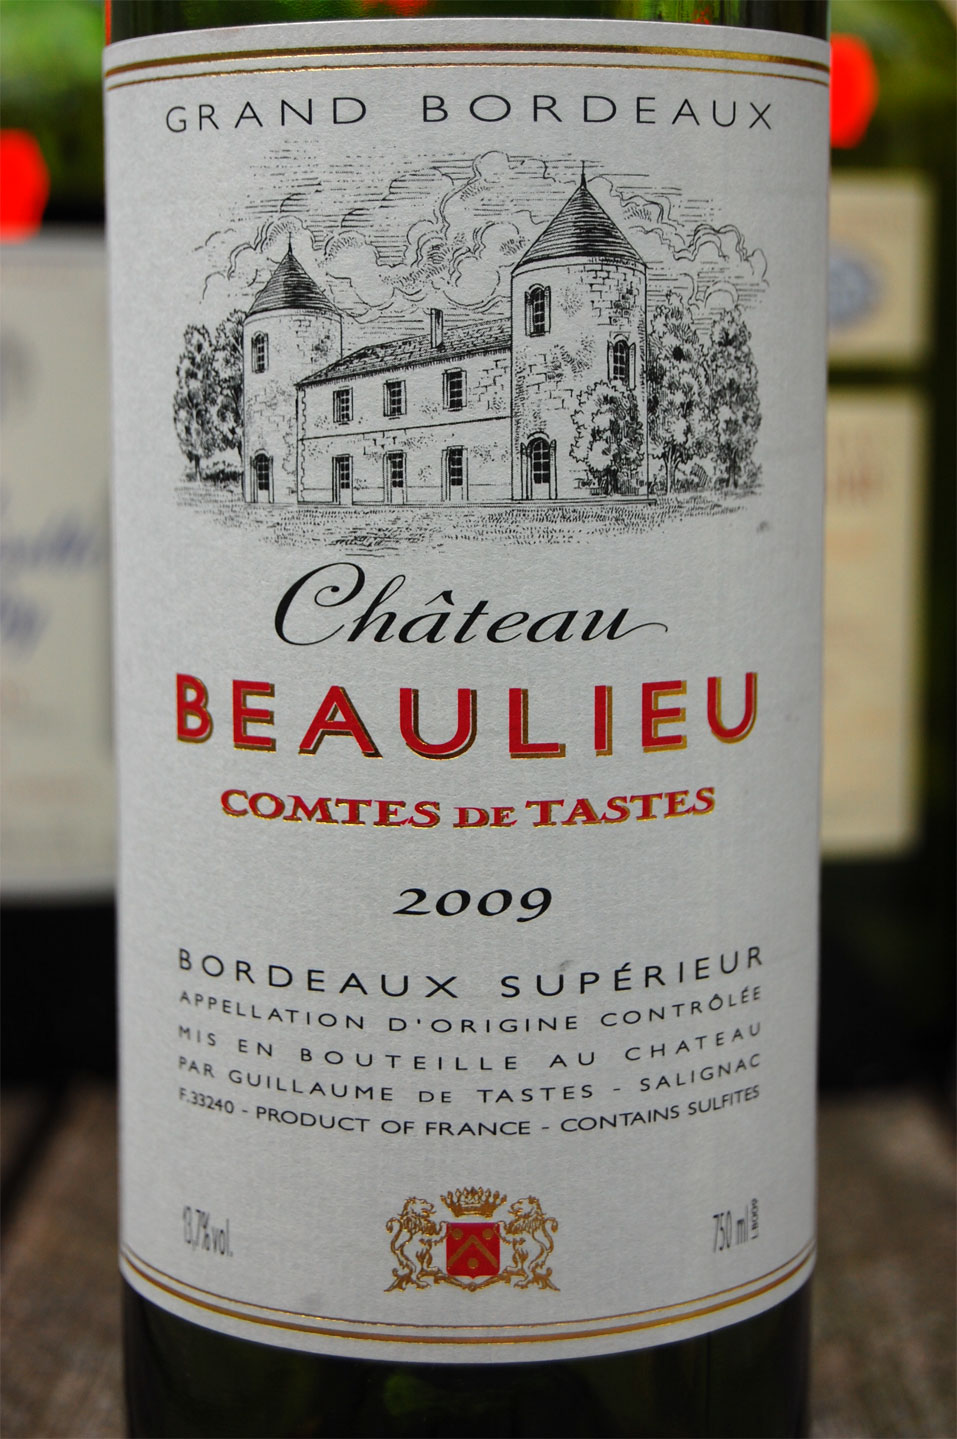 Chateau Beaulieu Comtes de Tastes 2009 Bordeaux Red Blends Wine Red Blends Wine